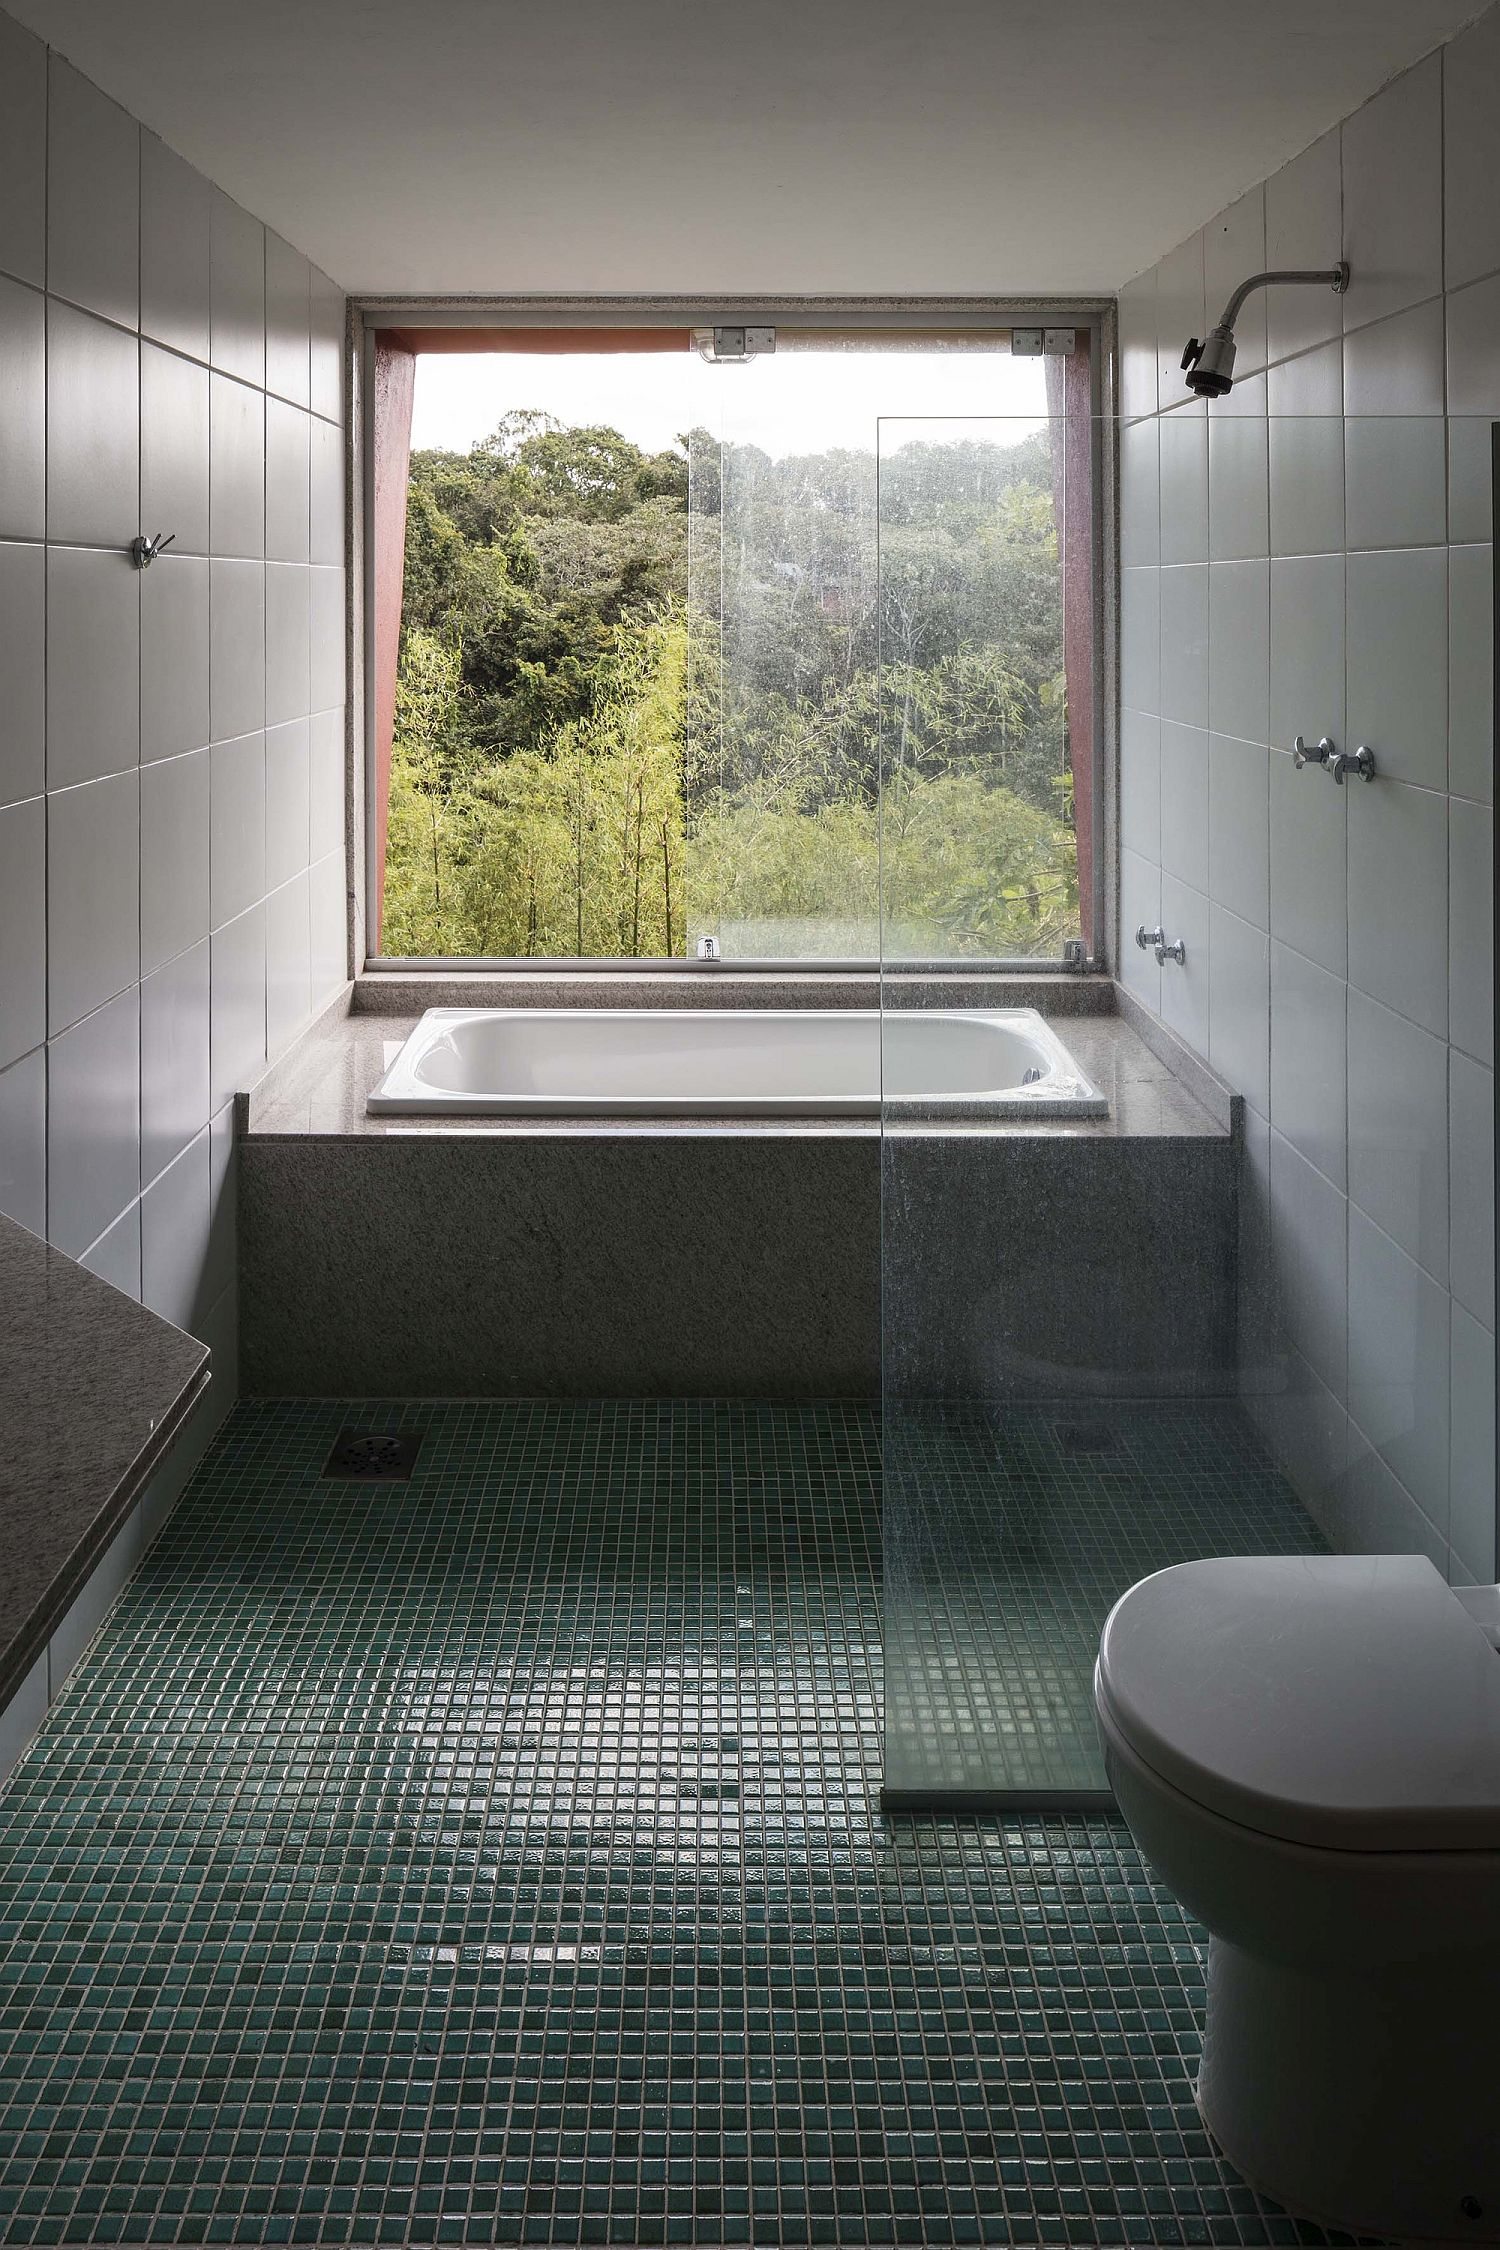 Contemporary bathroom of the house with forest view